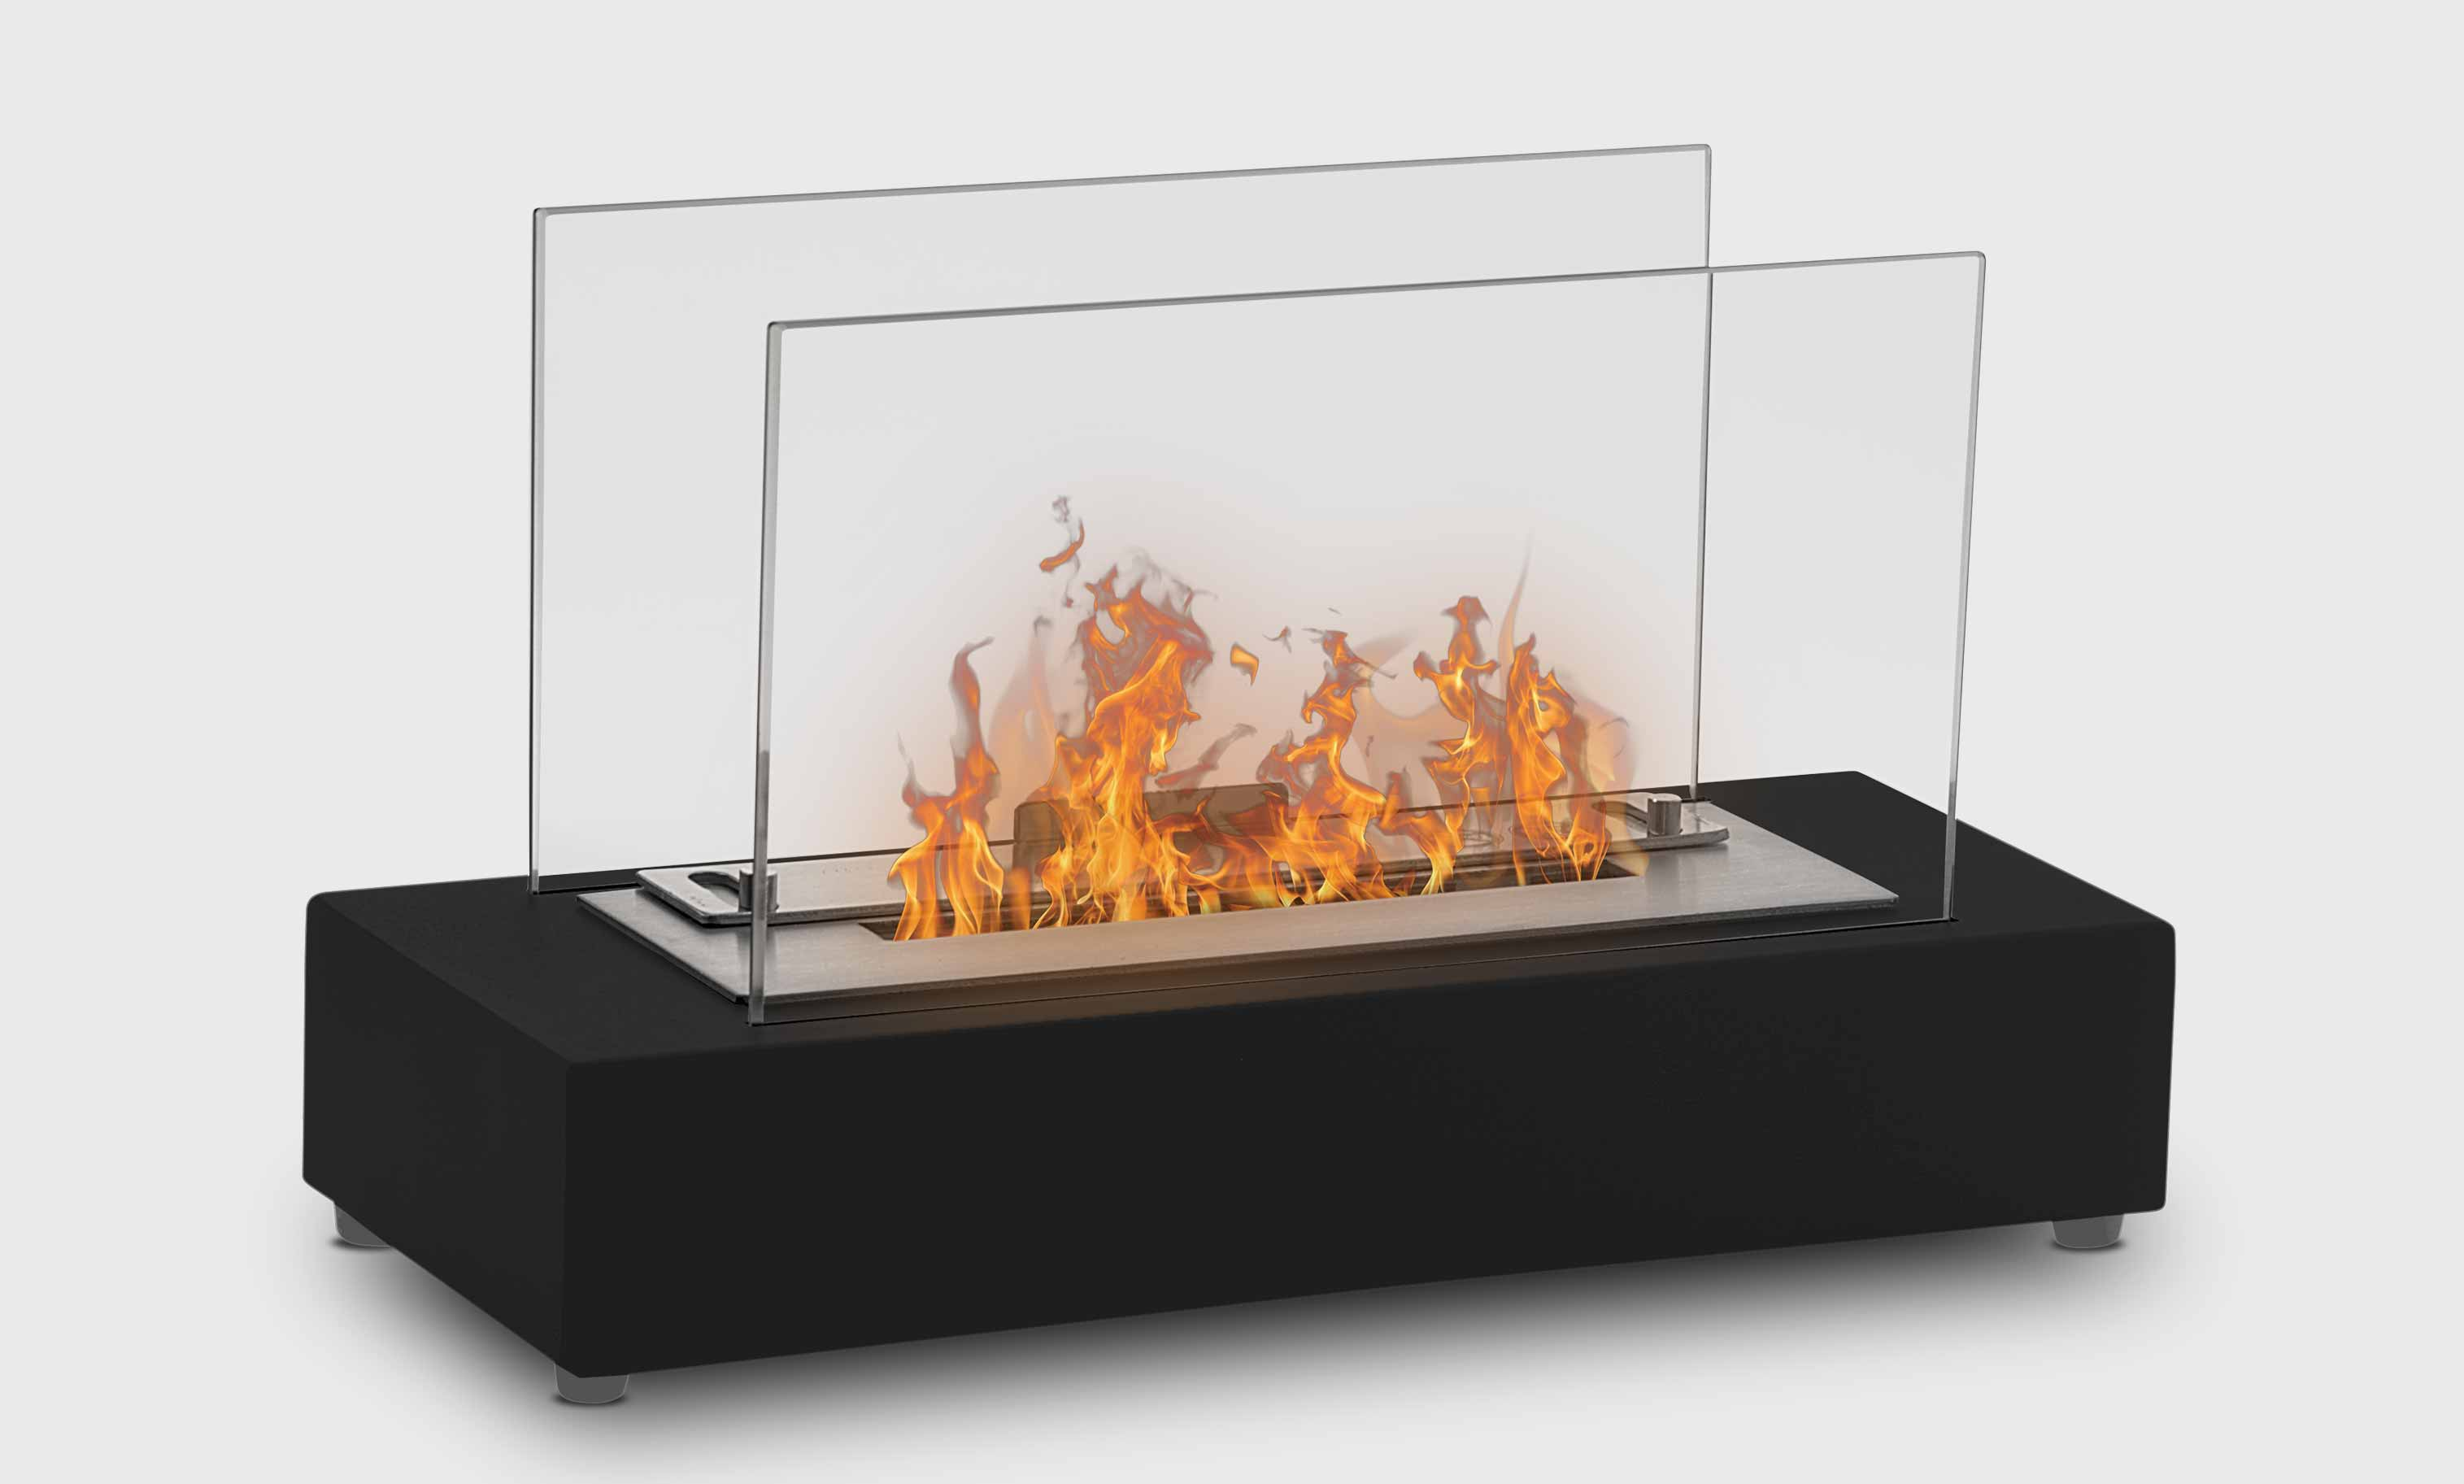 castorama ethanol brasero du feu en vasque caen basse with castorama ethanol kit de douche. Black Bedroom Furniture Sets. Home Design Ideas